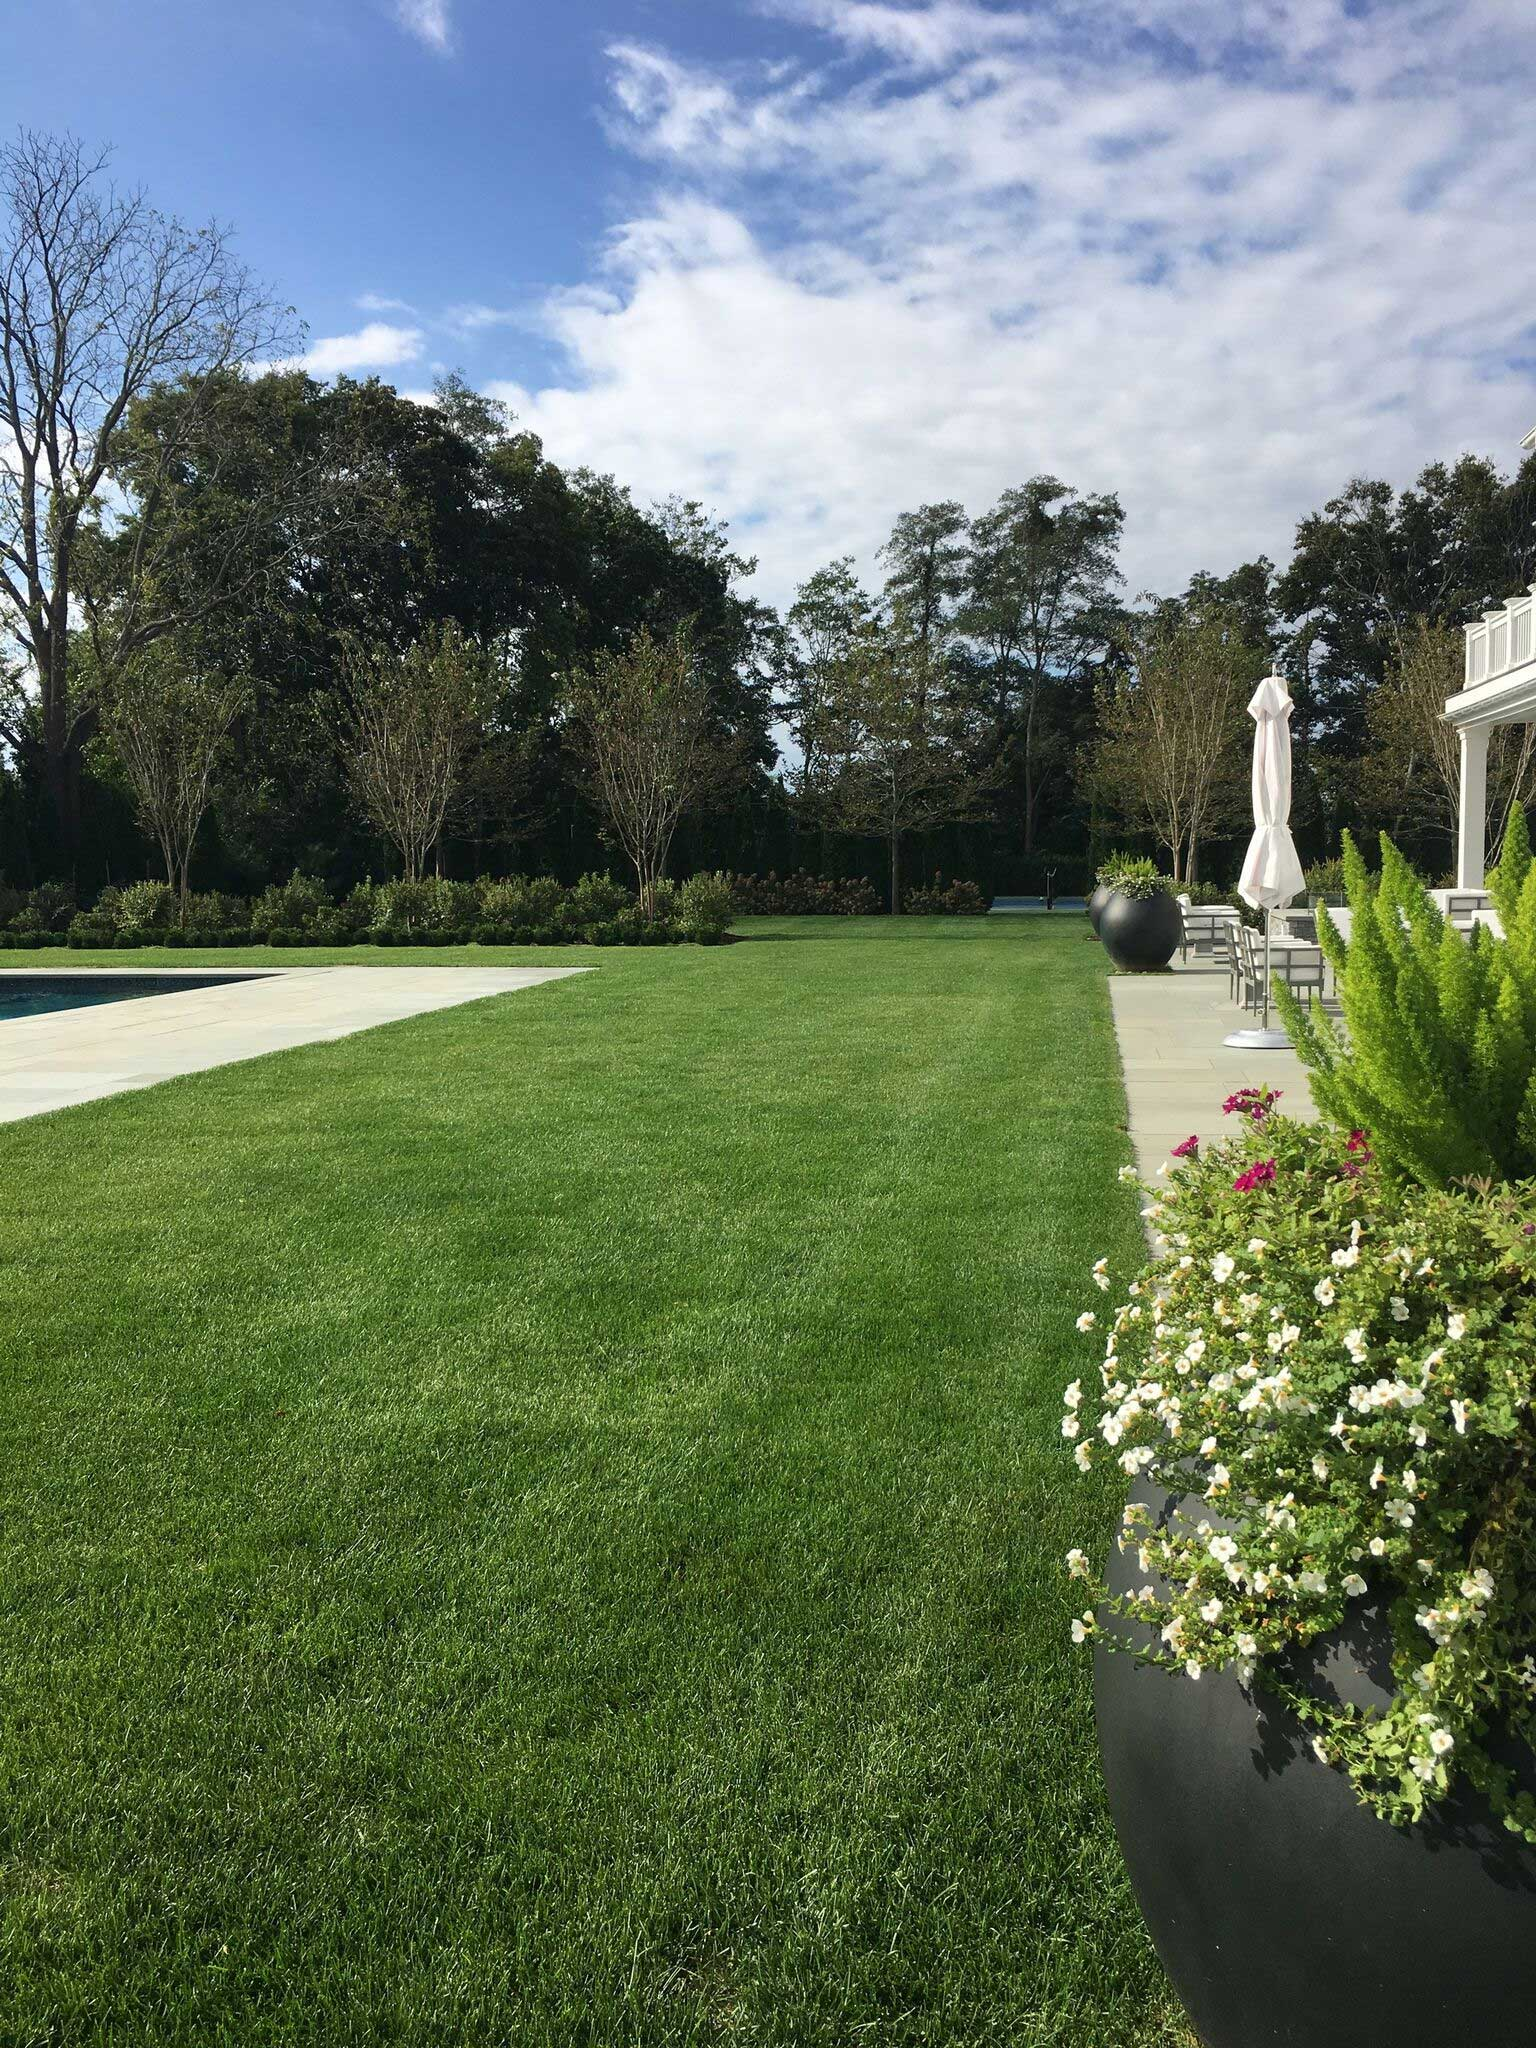 A lawn separates the back terrace of the house from the swimming pool. The edge of the Pool Terrace is defined by rows of Sarah's Favorite Crapemyrtle underplanted with Summersweet and Boxwood hedges.